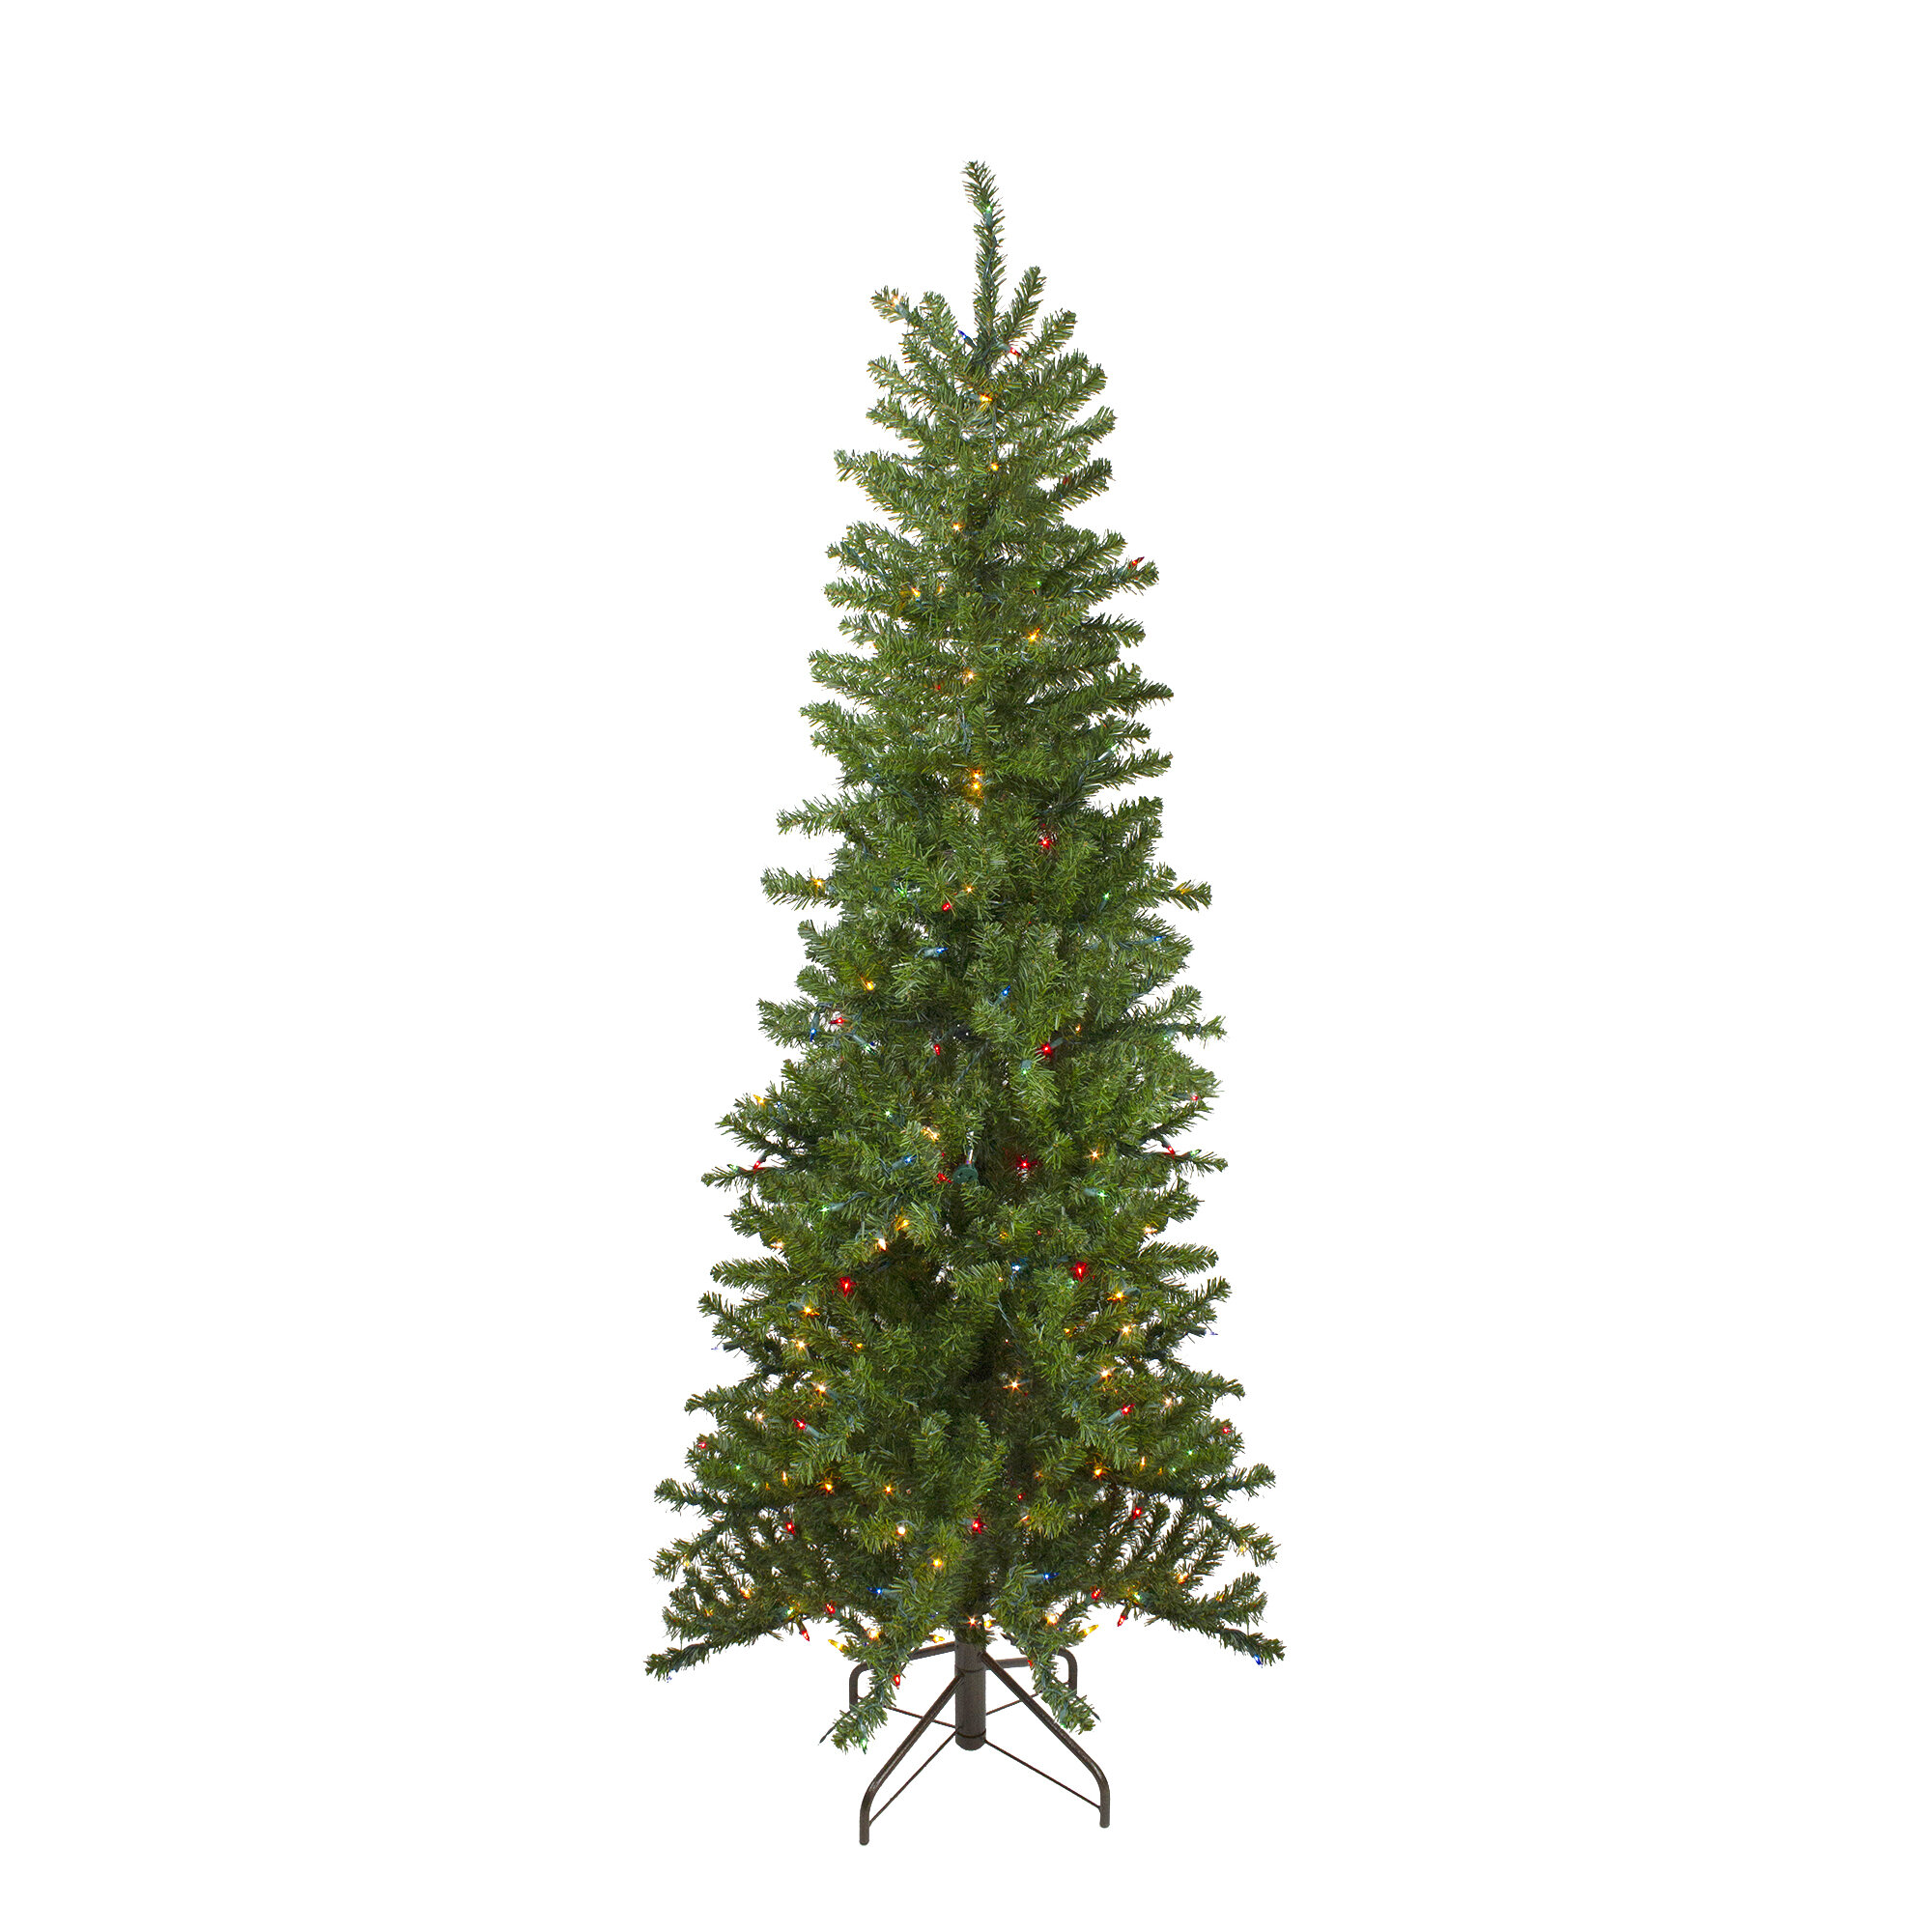 The Holiday Aisle 6 5 Green Pine Artificial Christmas Tree With 400 Multi Color Lights Wayfair